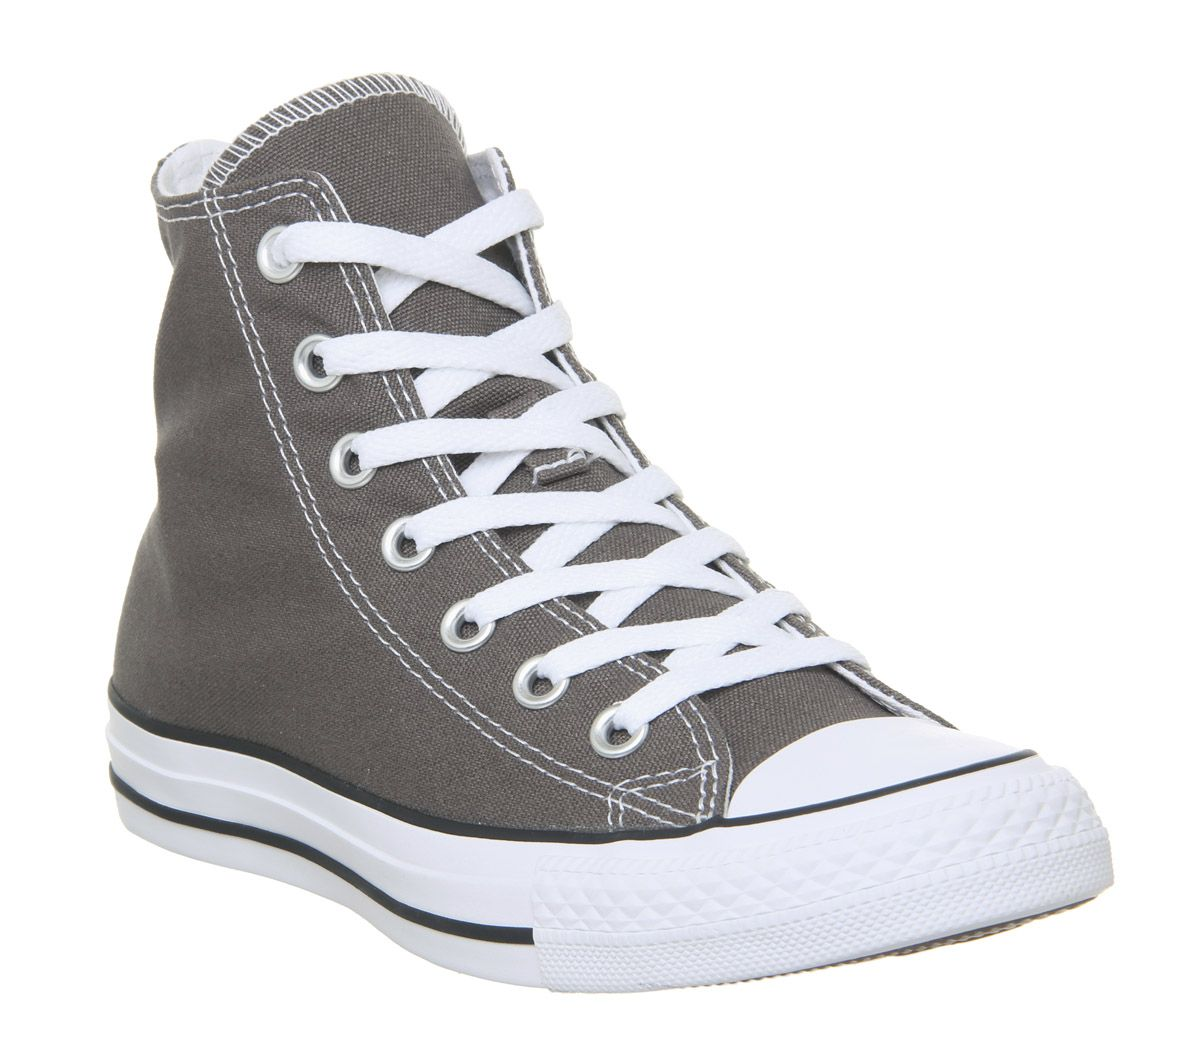 f84365b6641b Converse All Star Hi Charcoal - Unisex Sports